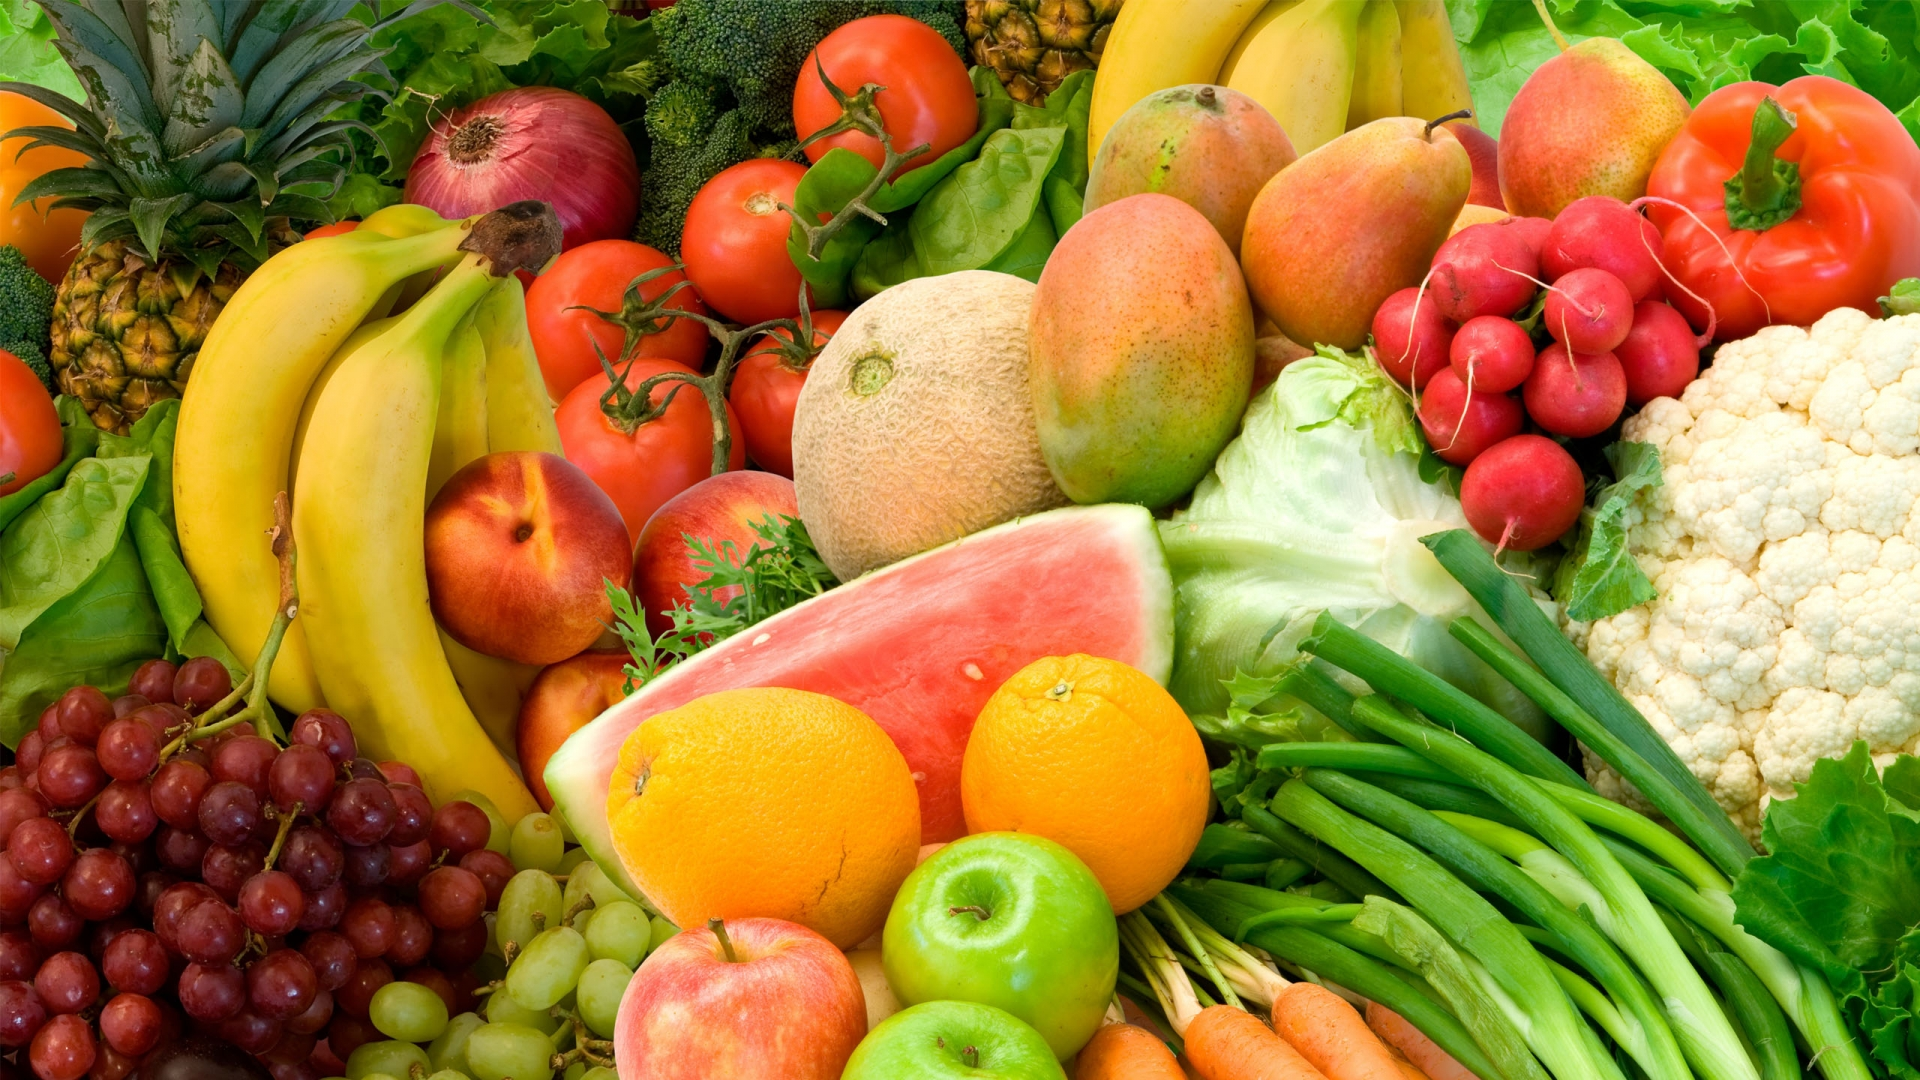 Fruits and vegetables hd wallpapers Phantom Forest Blog 1920x1080